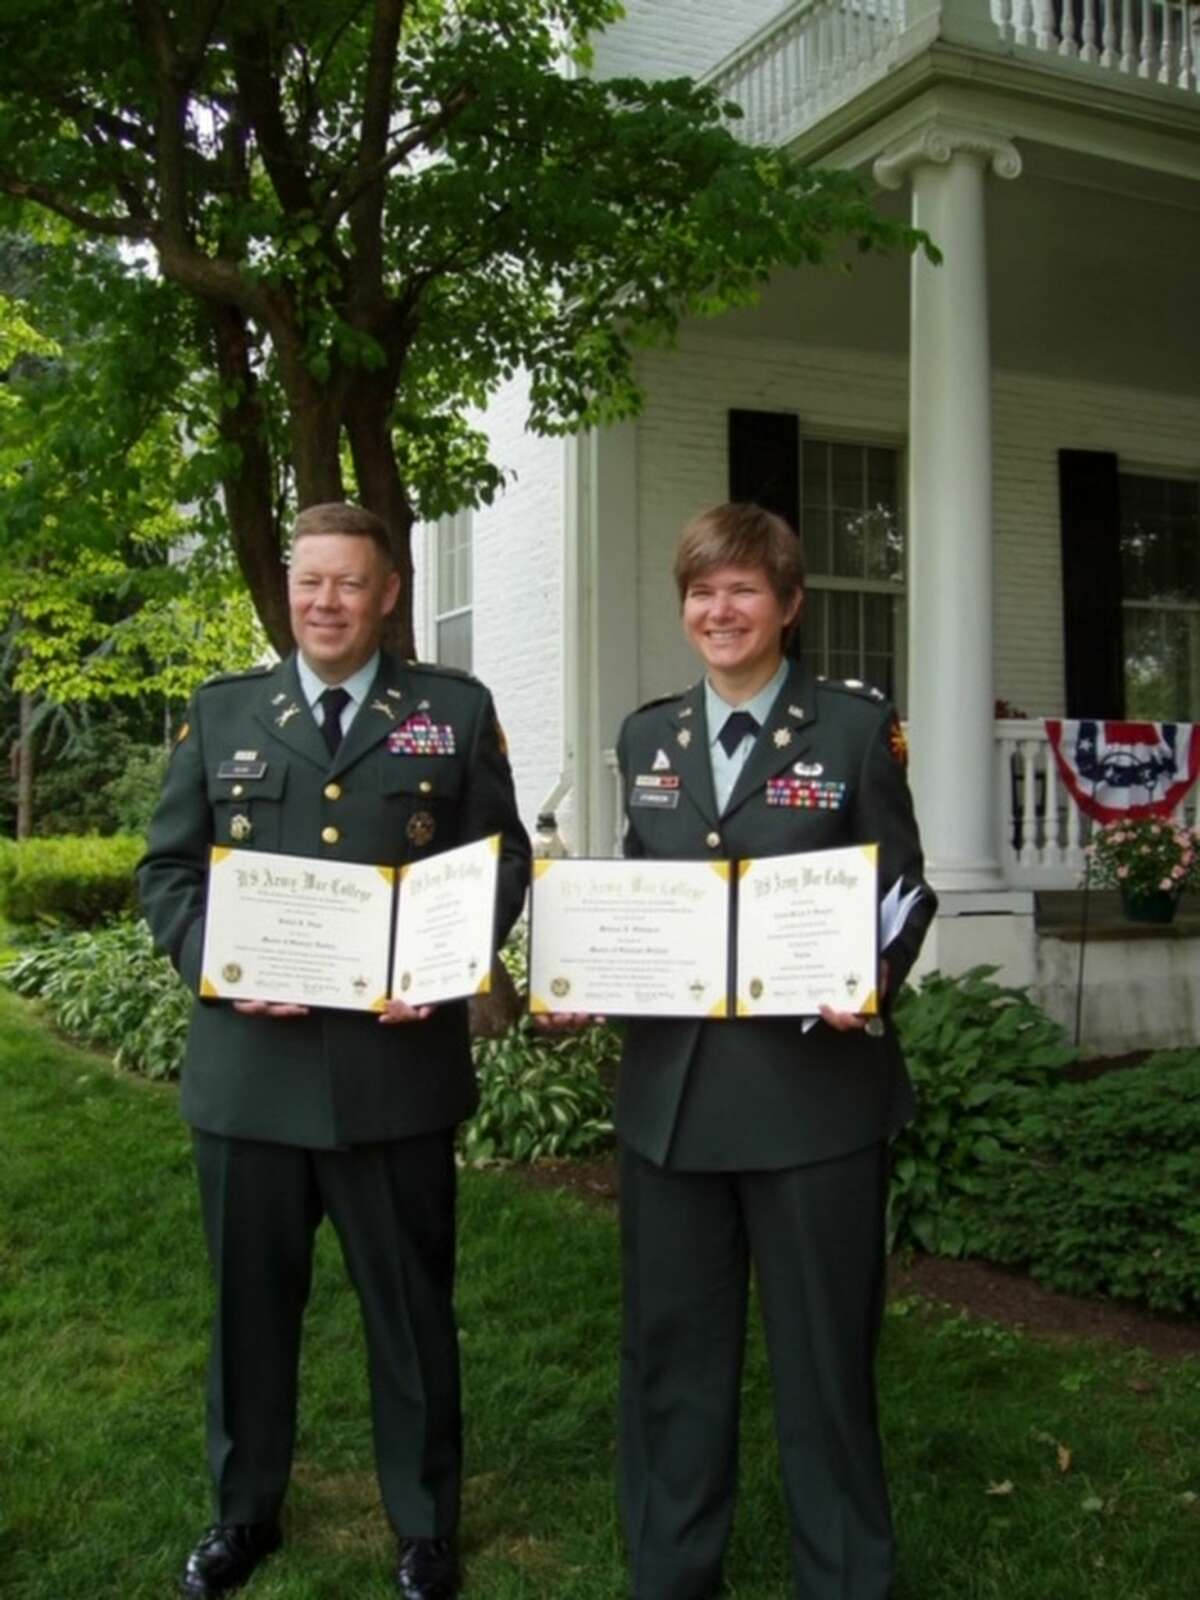 Col. Bob Akam, left, and Col. Melissa Sturgeon graduate from the US Army War College in Carlisle Barracks, PA in May of 2007 in an undated courtesy photo provided by Col. Bob Akam.